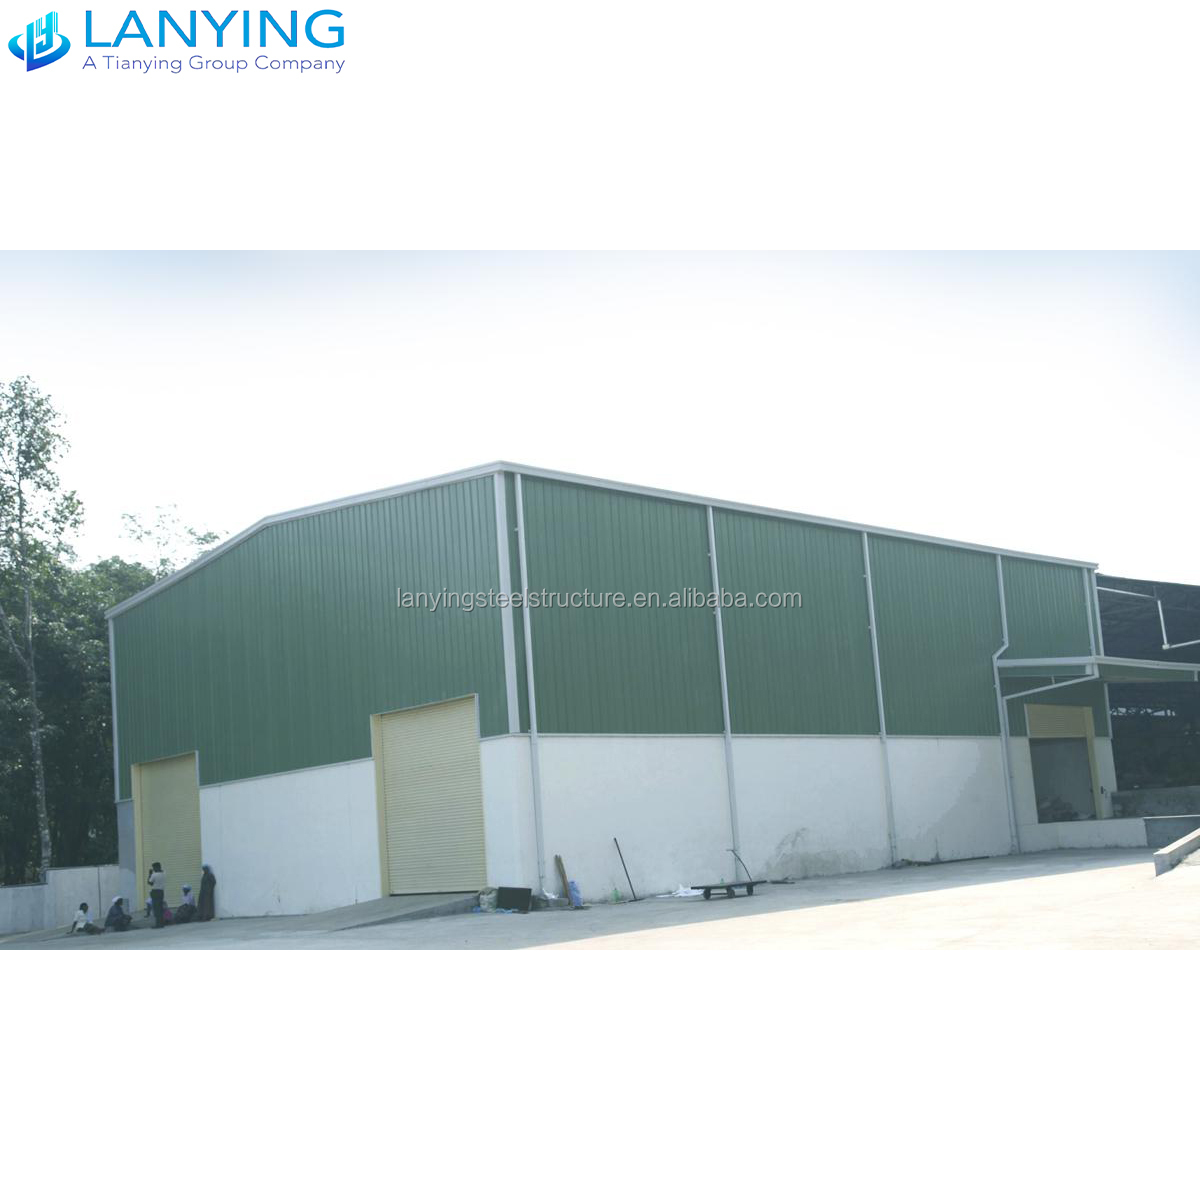 Low cost prefabricated steel shed/metal building/steel structure warehouse